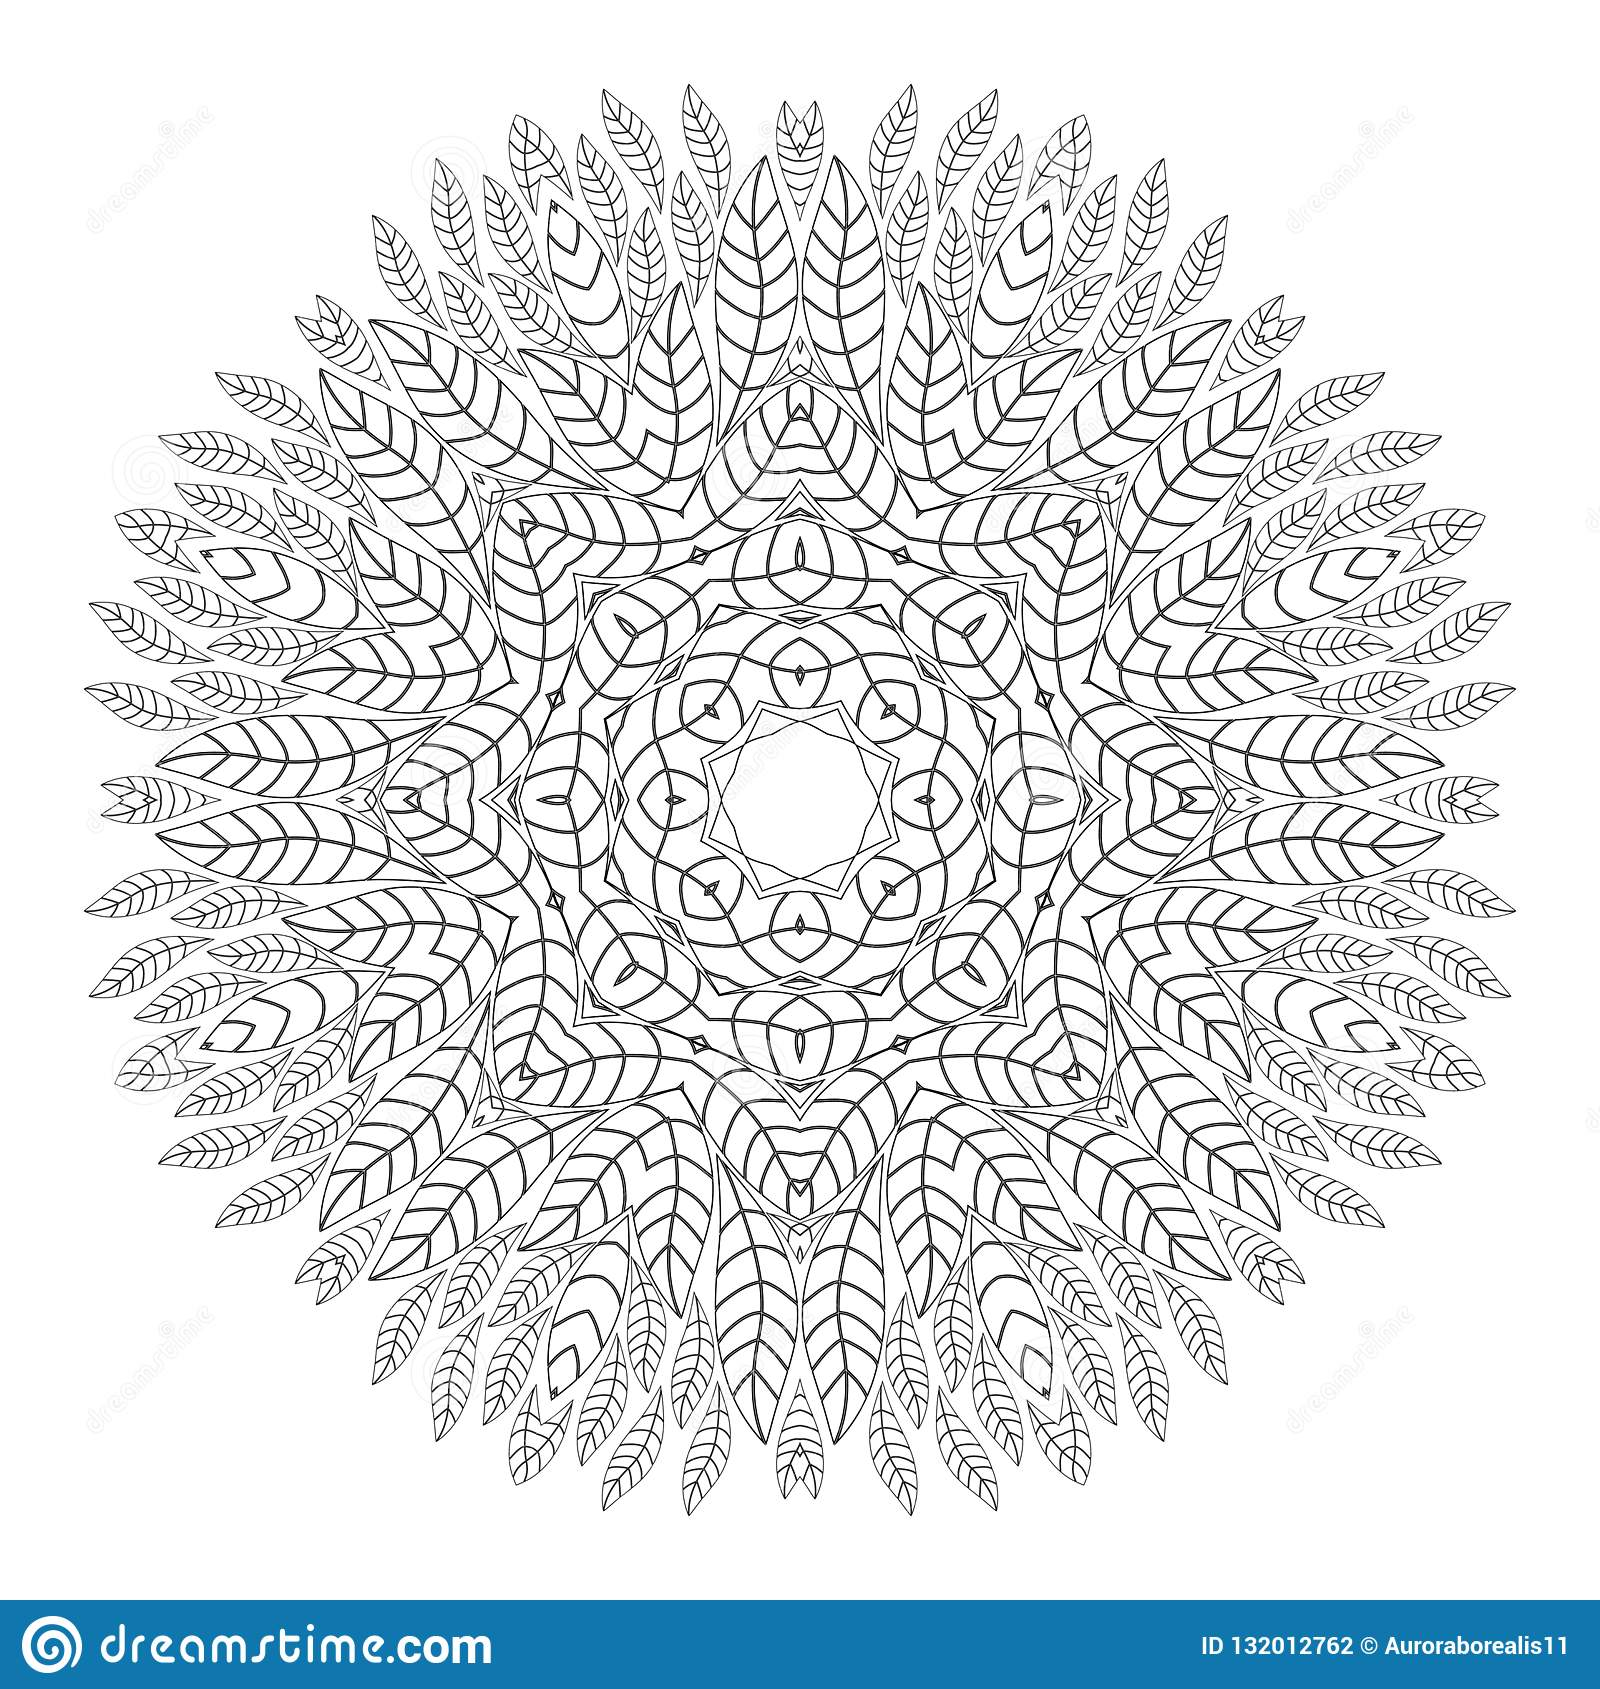 Paisley Flower   Printable adult coloring pages, Mandala coloring ...   1689x1600